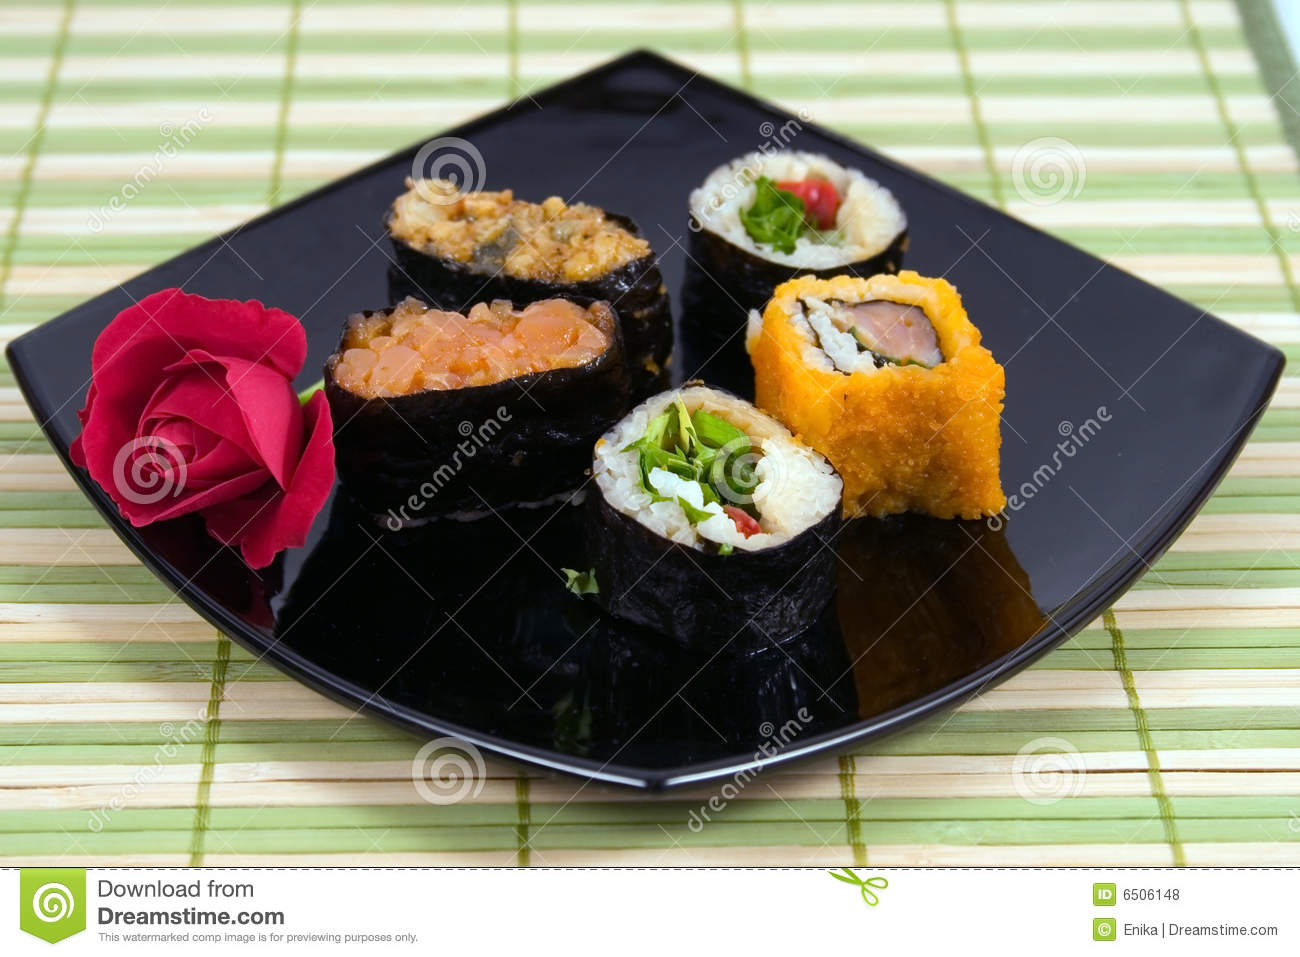 Plate from a susi and roll